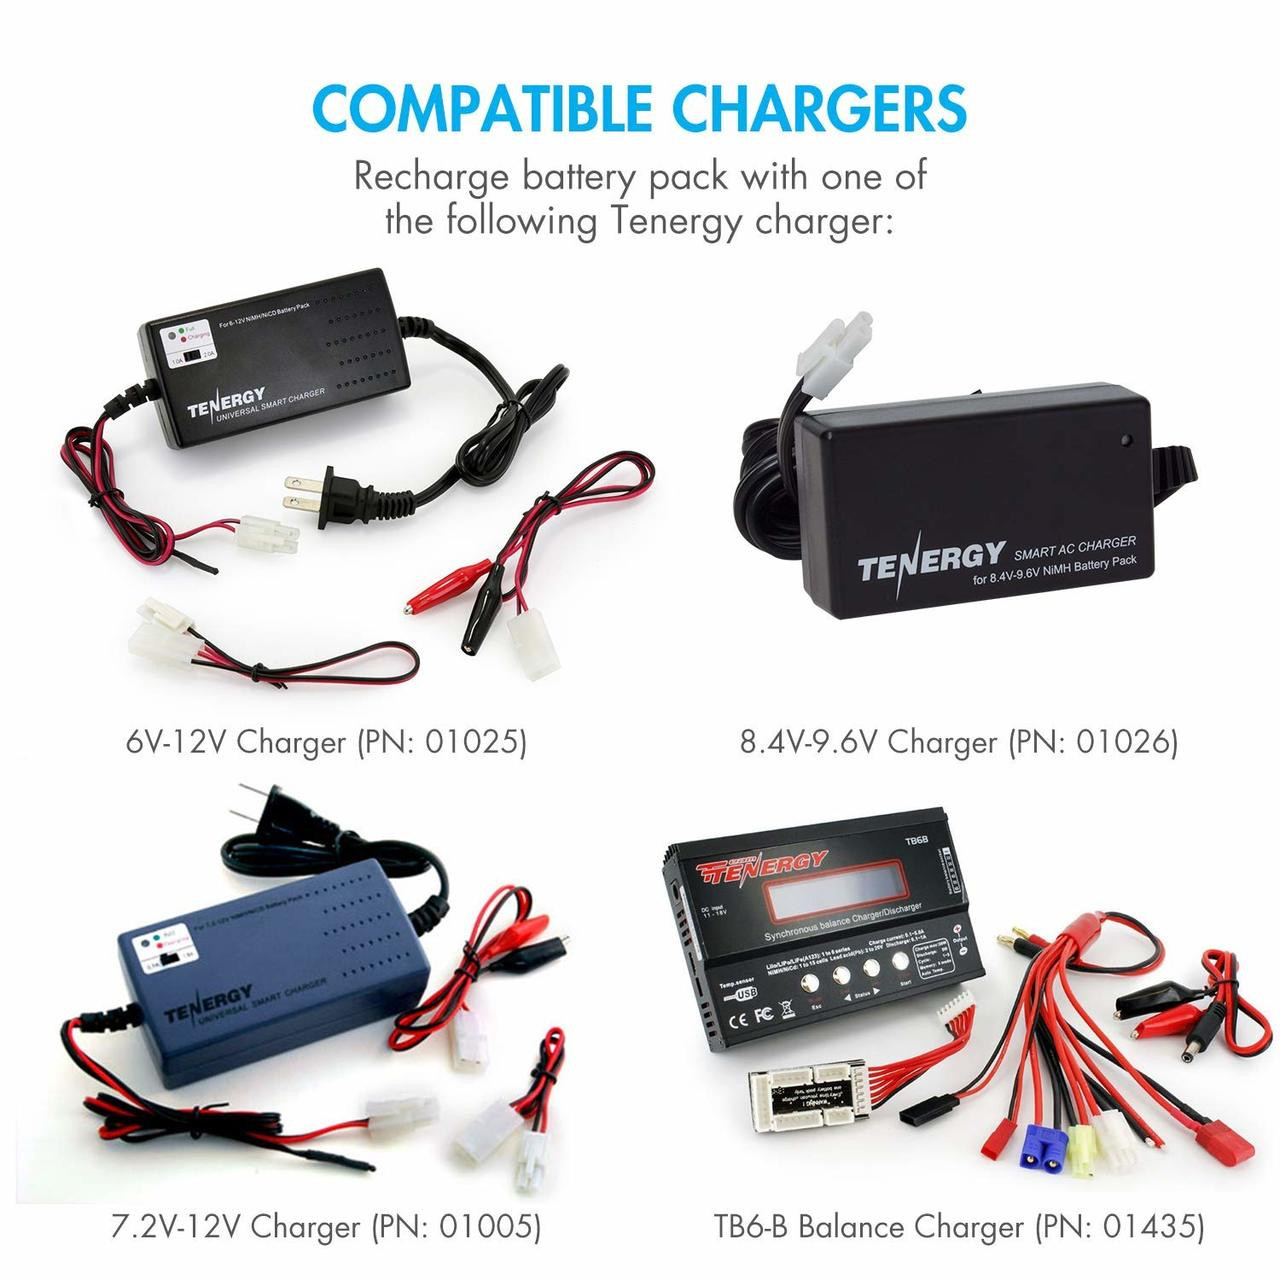 Tenergy NiMH 8.4V 3800mAh Battery Pack with Tamiya, for RC Cars